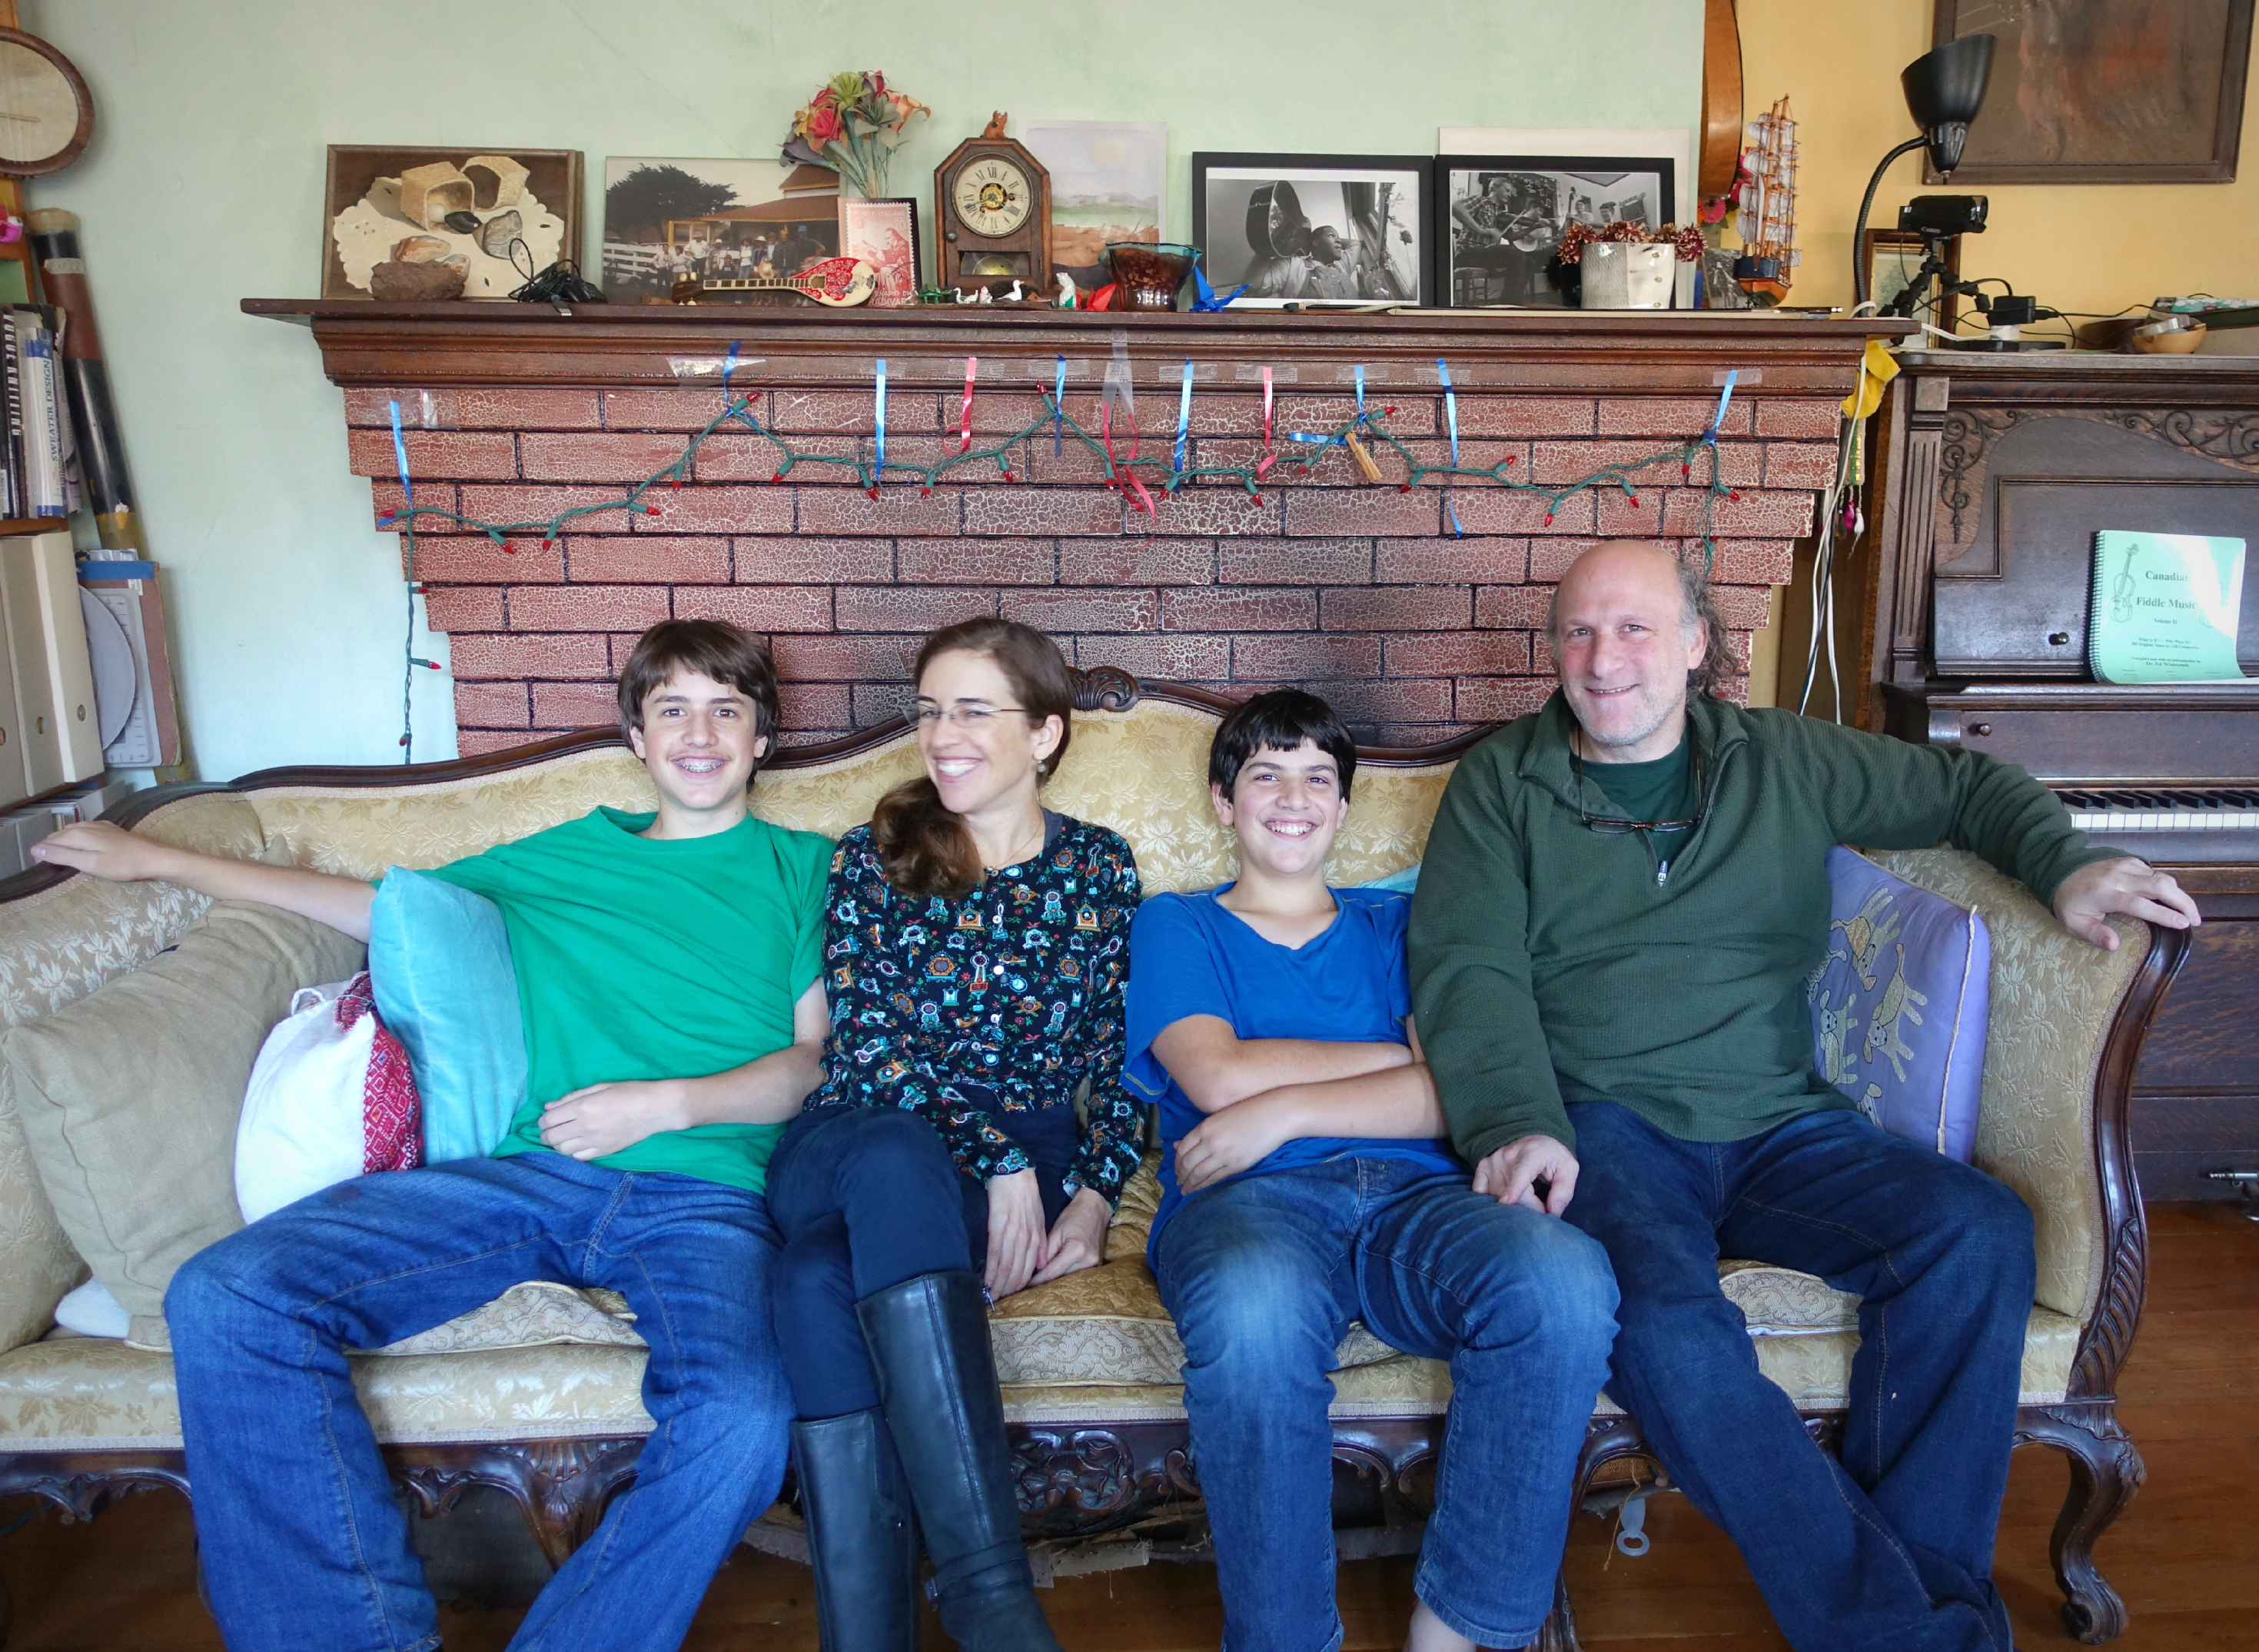 Family Seated Couch